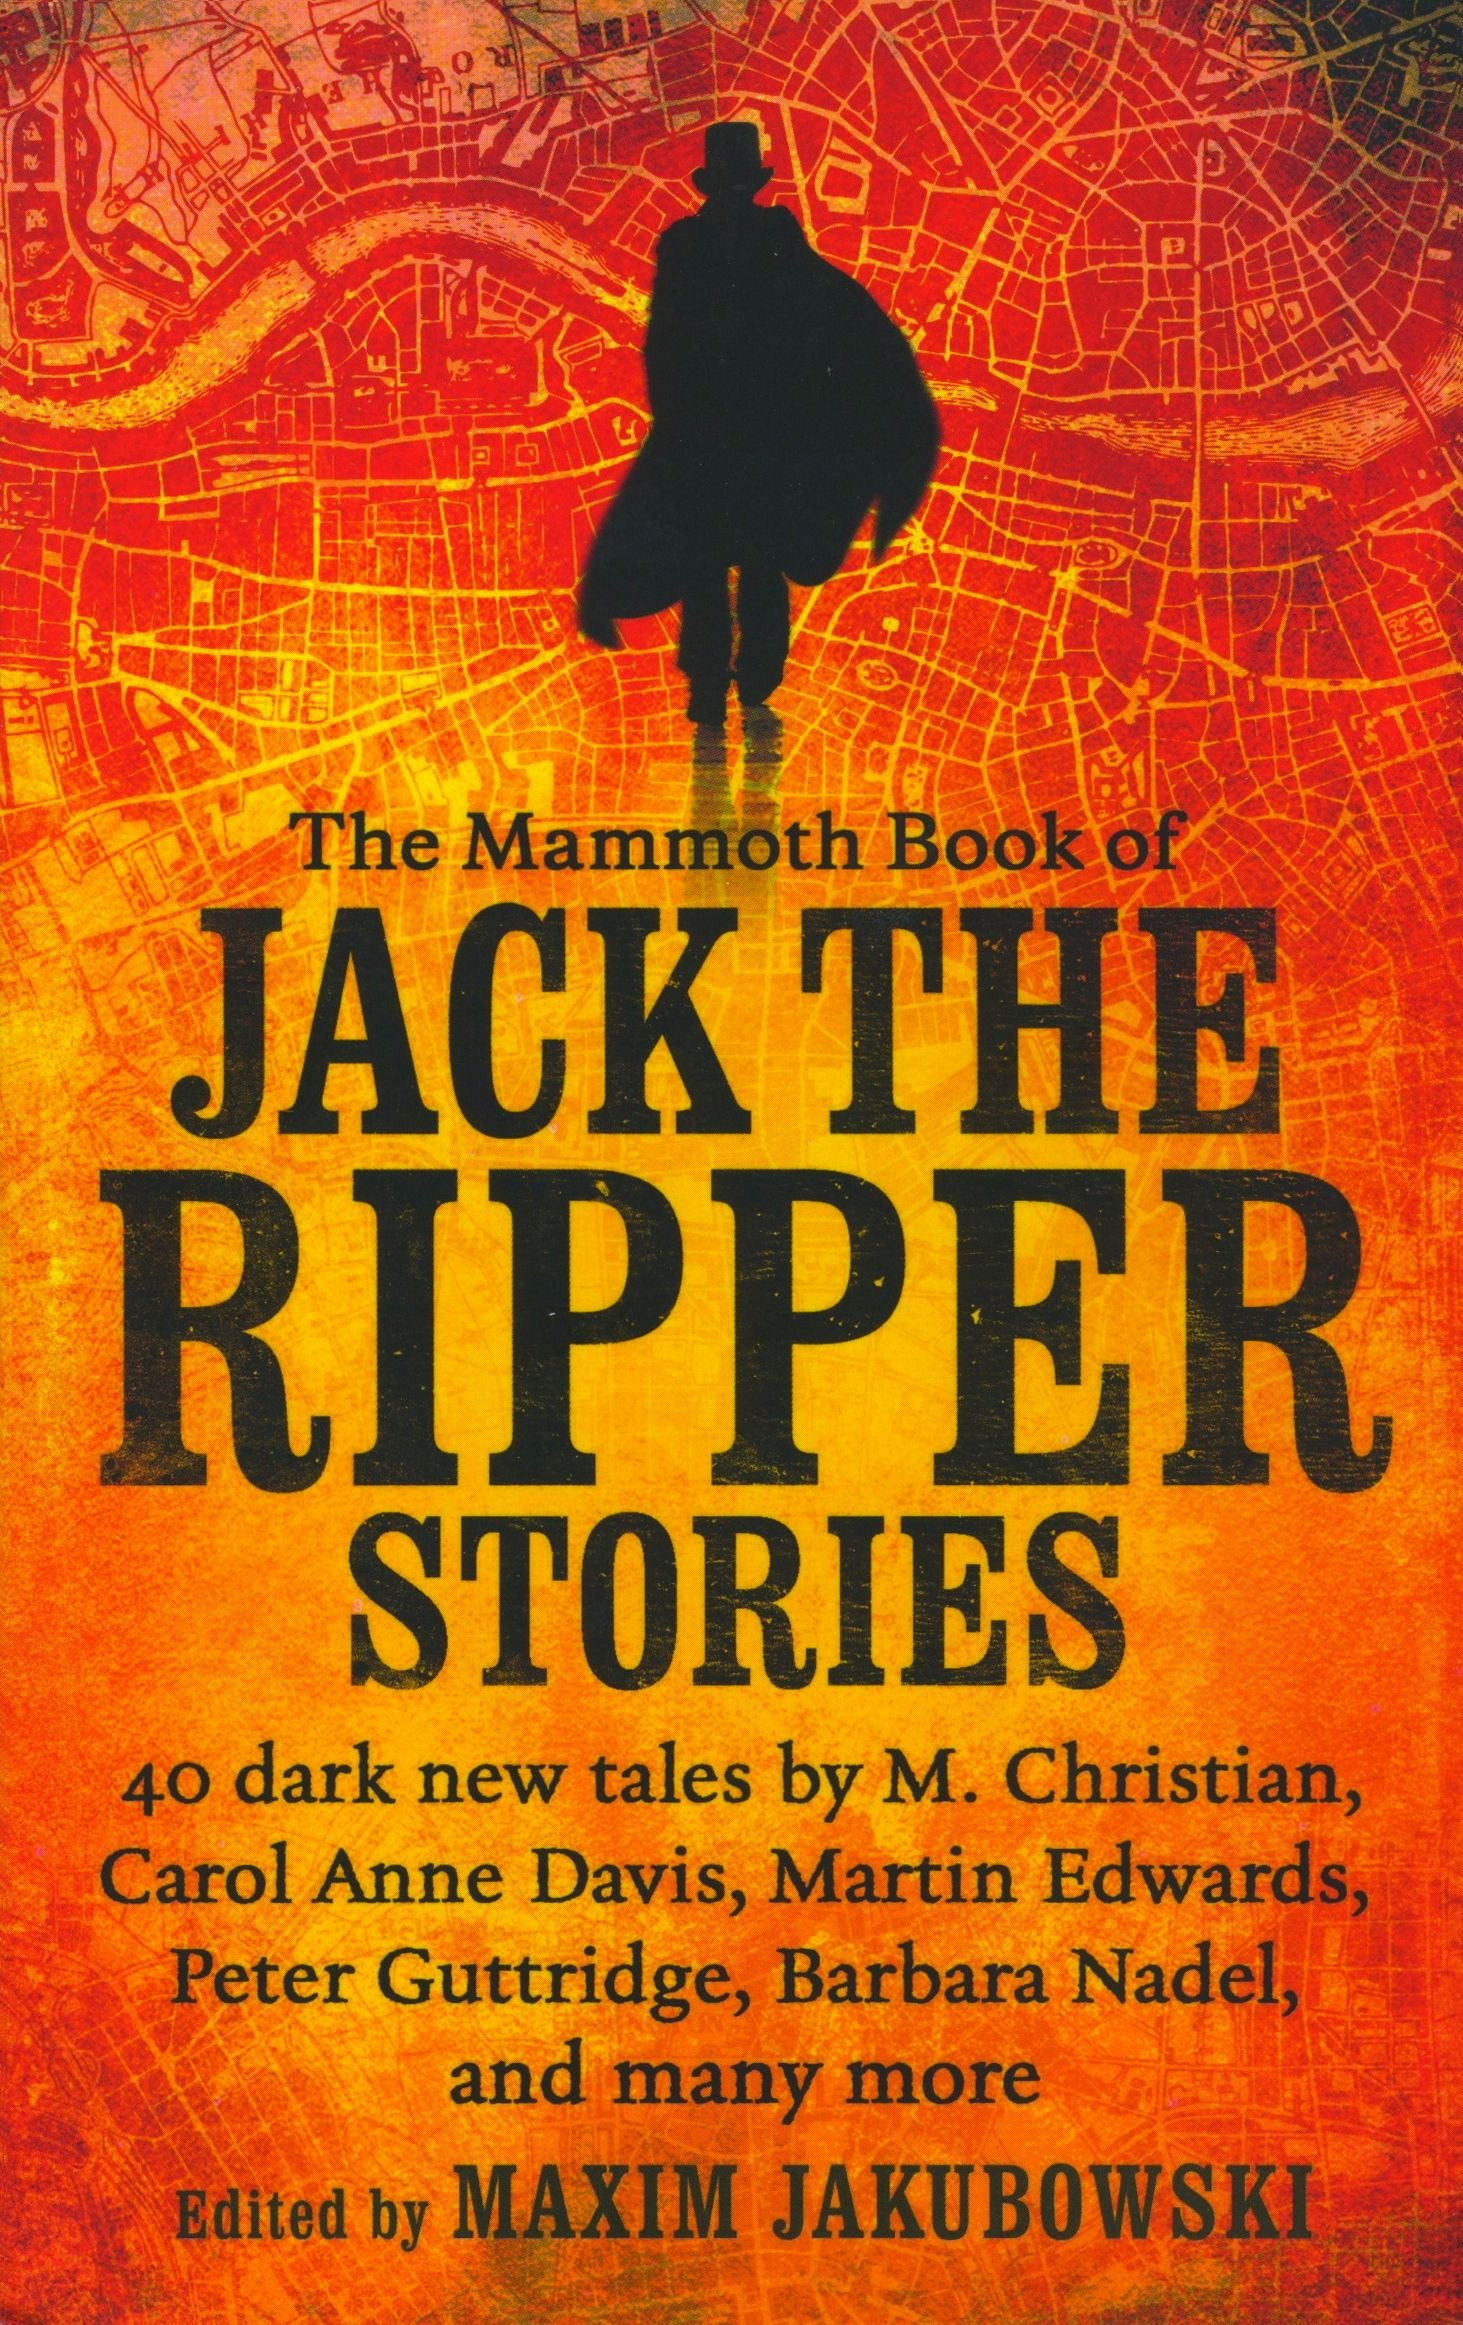 Image result for the mammoth book of jack the ripper stories book cover